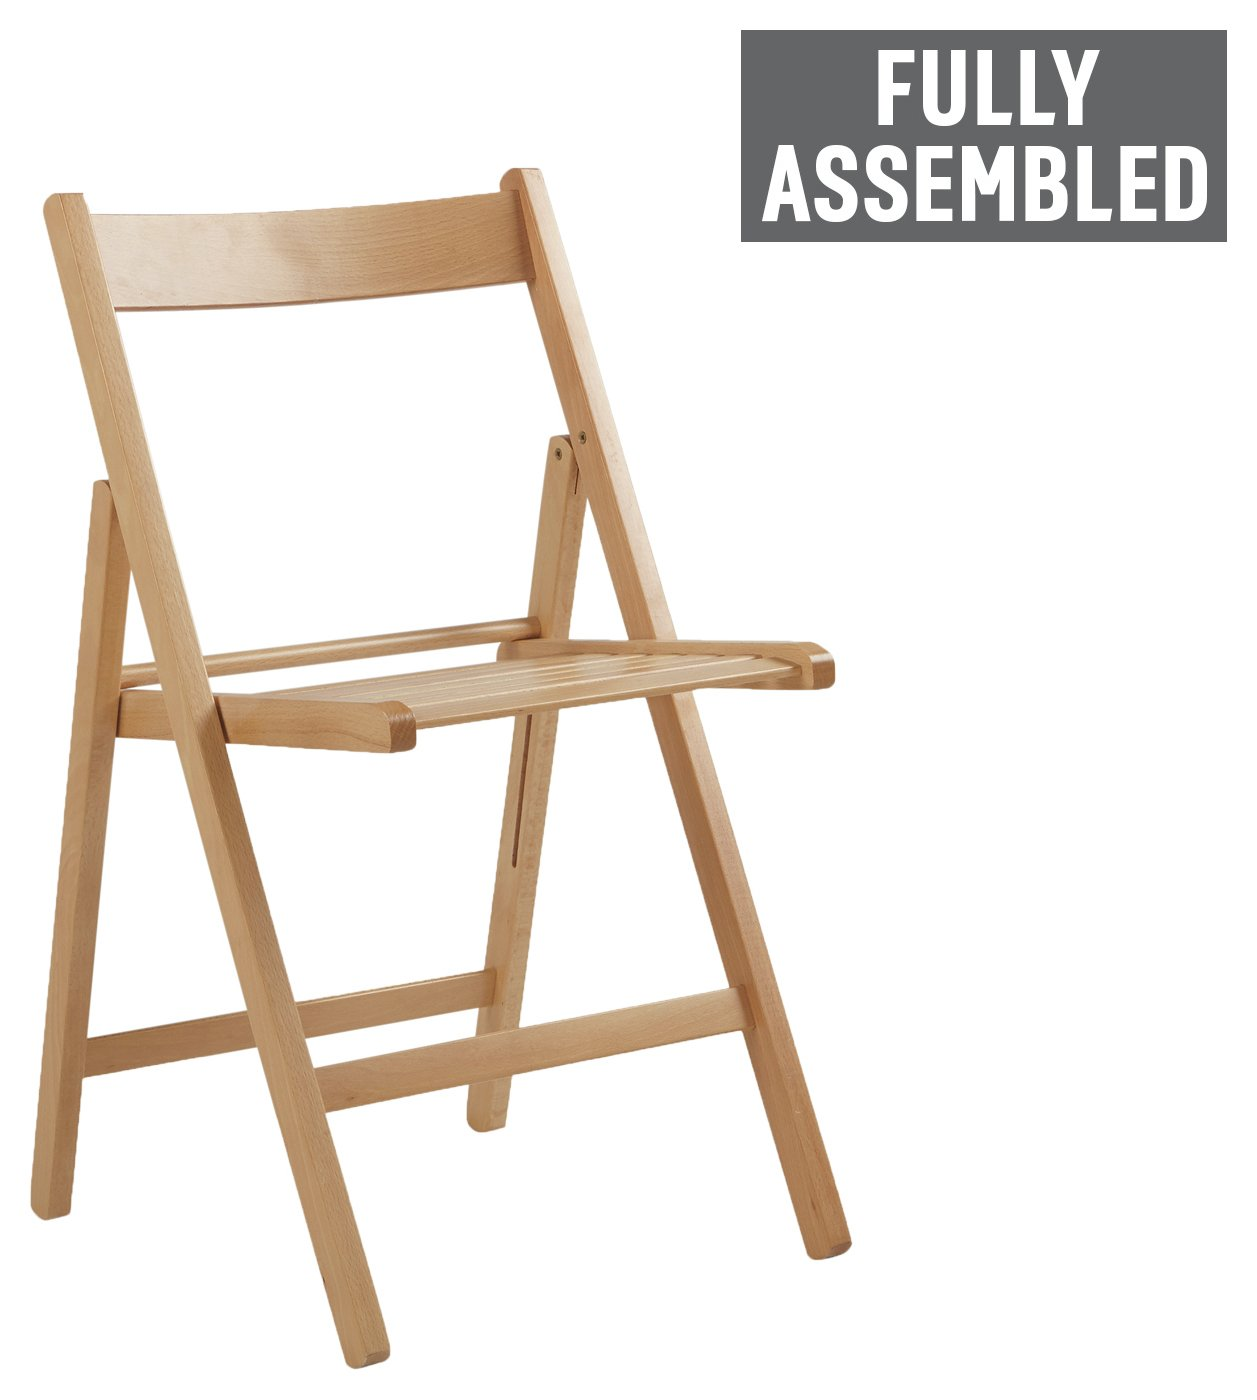 Wooden Folding Chairs buy simple value wooden folding chair - natural at argos.co.uk